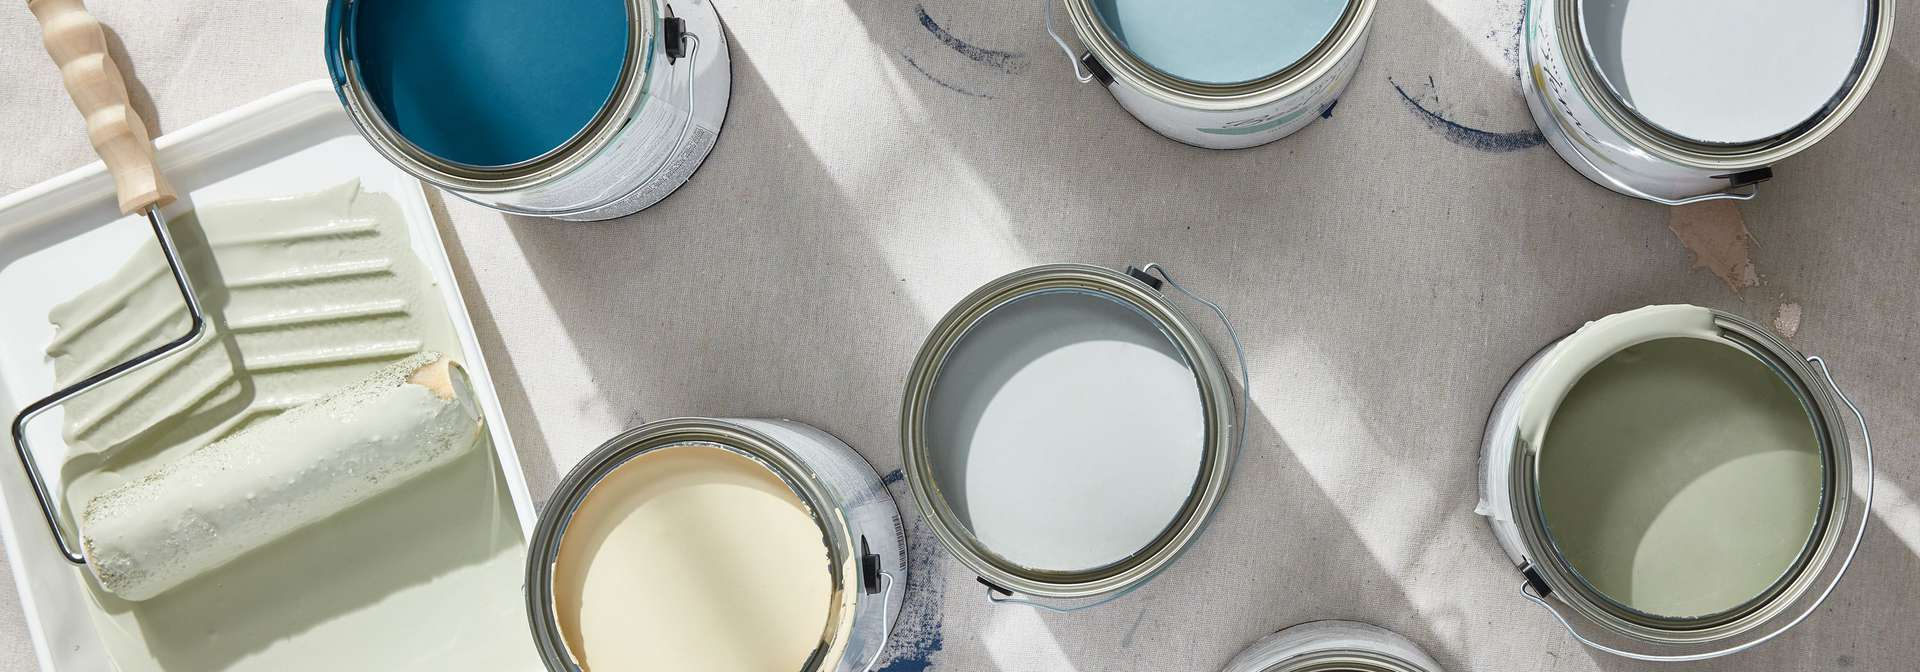 The Spruce best chalky paint colors in cans, laid out on a drop cloth with a paint roller in the corner.